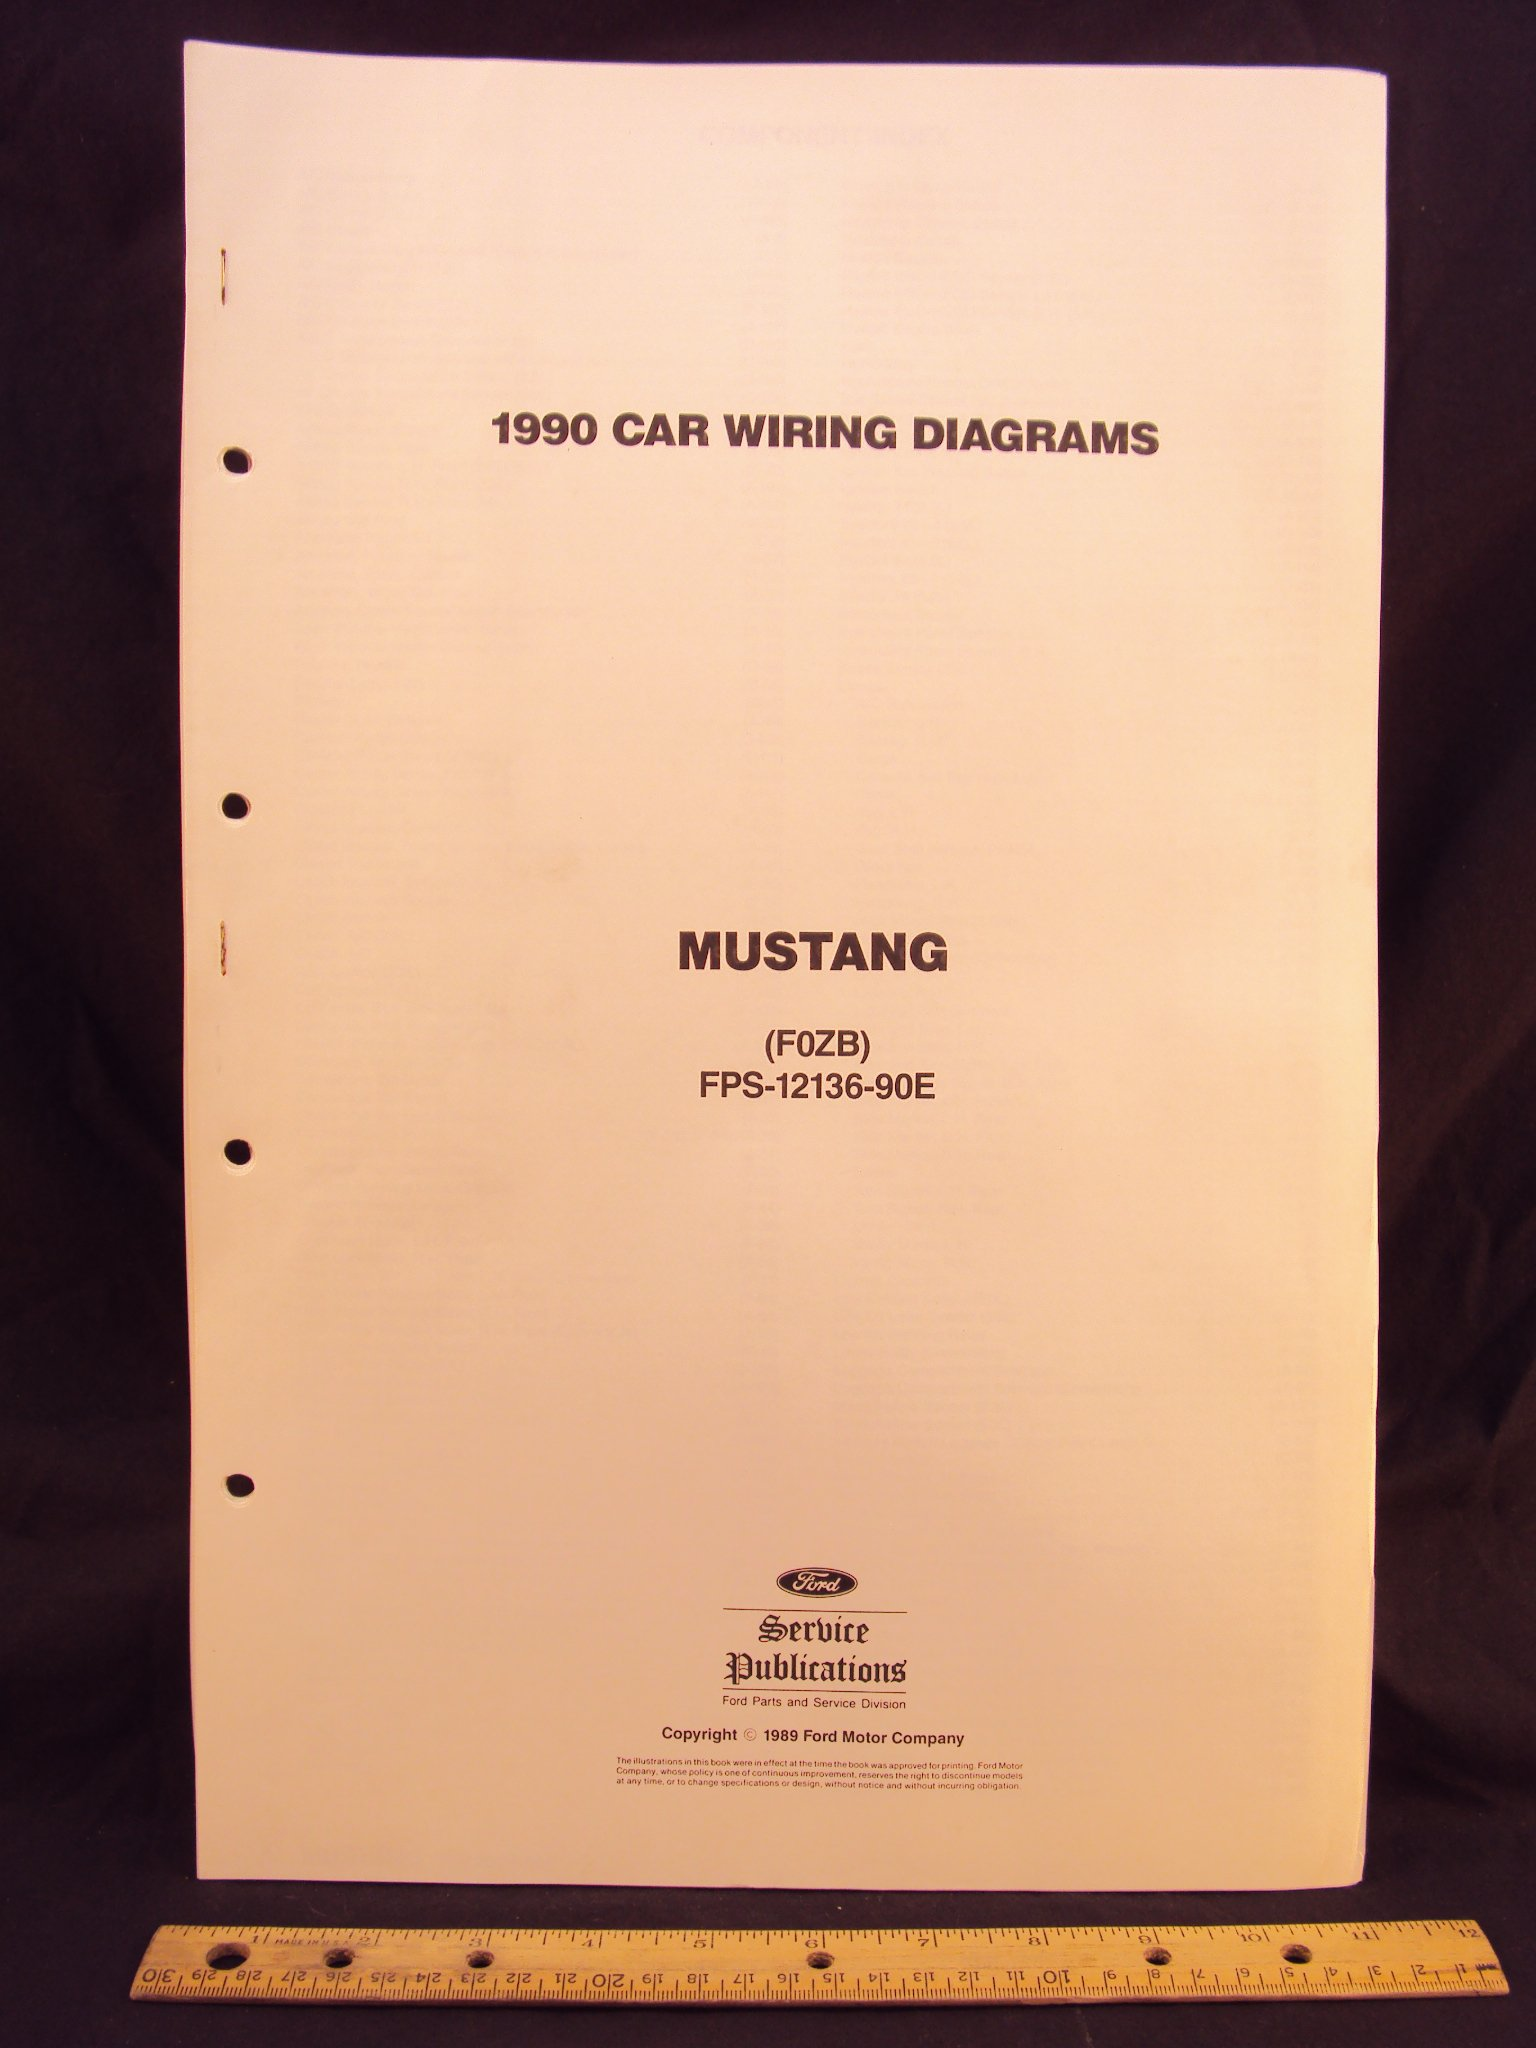 1990 Ford Mustang Electrical Wiring Diagrams Schematics Ford Motor Company Amazon Com Books